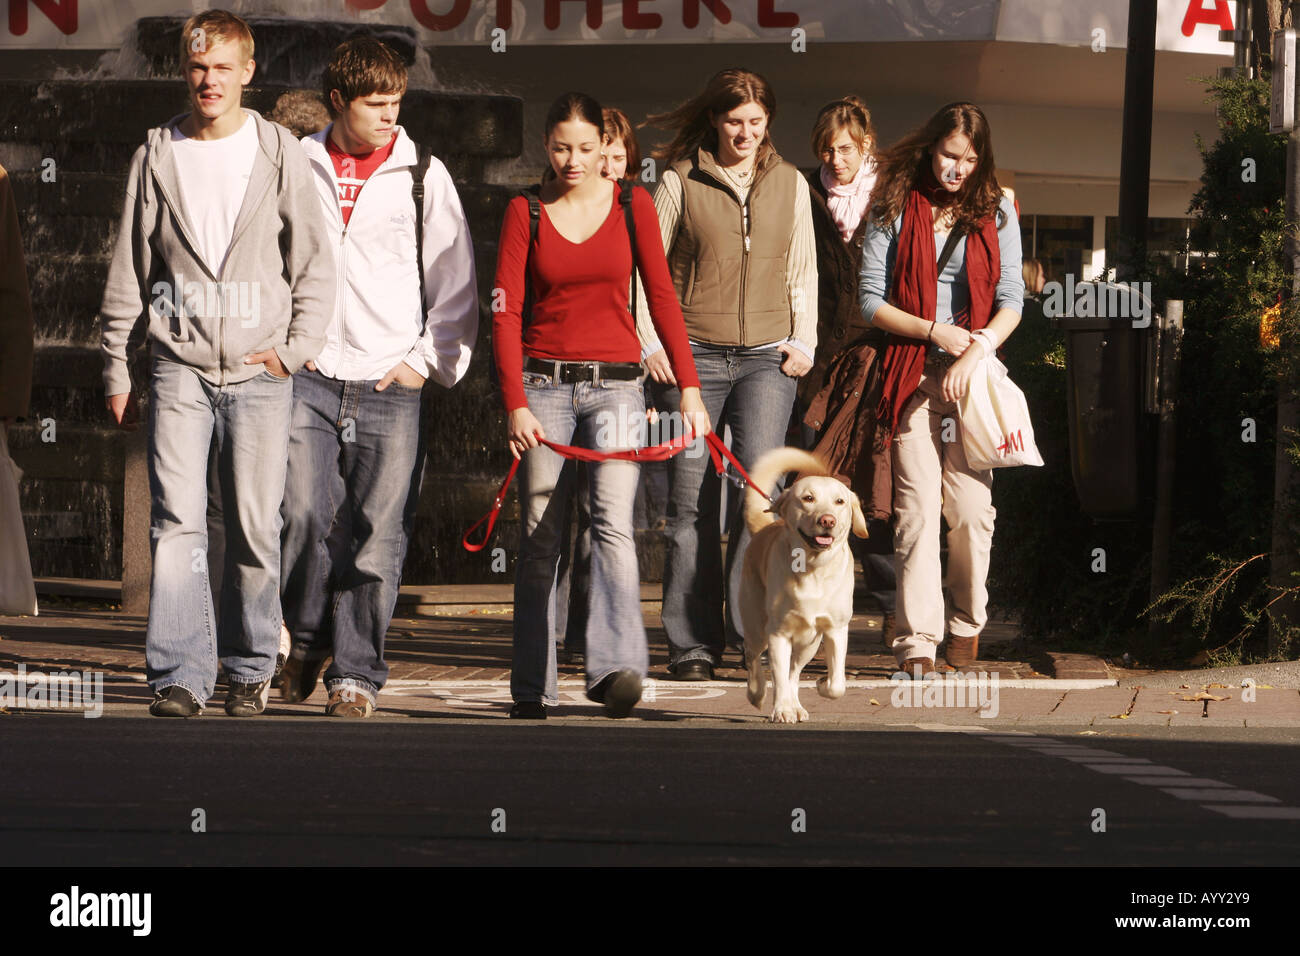 Labrador in city crossing street with juveniles - Stock Image